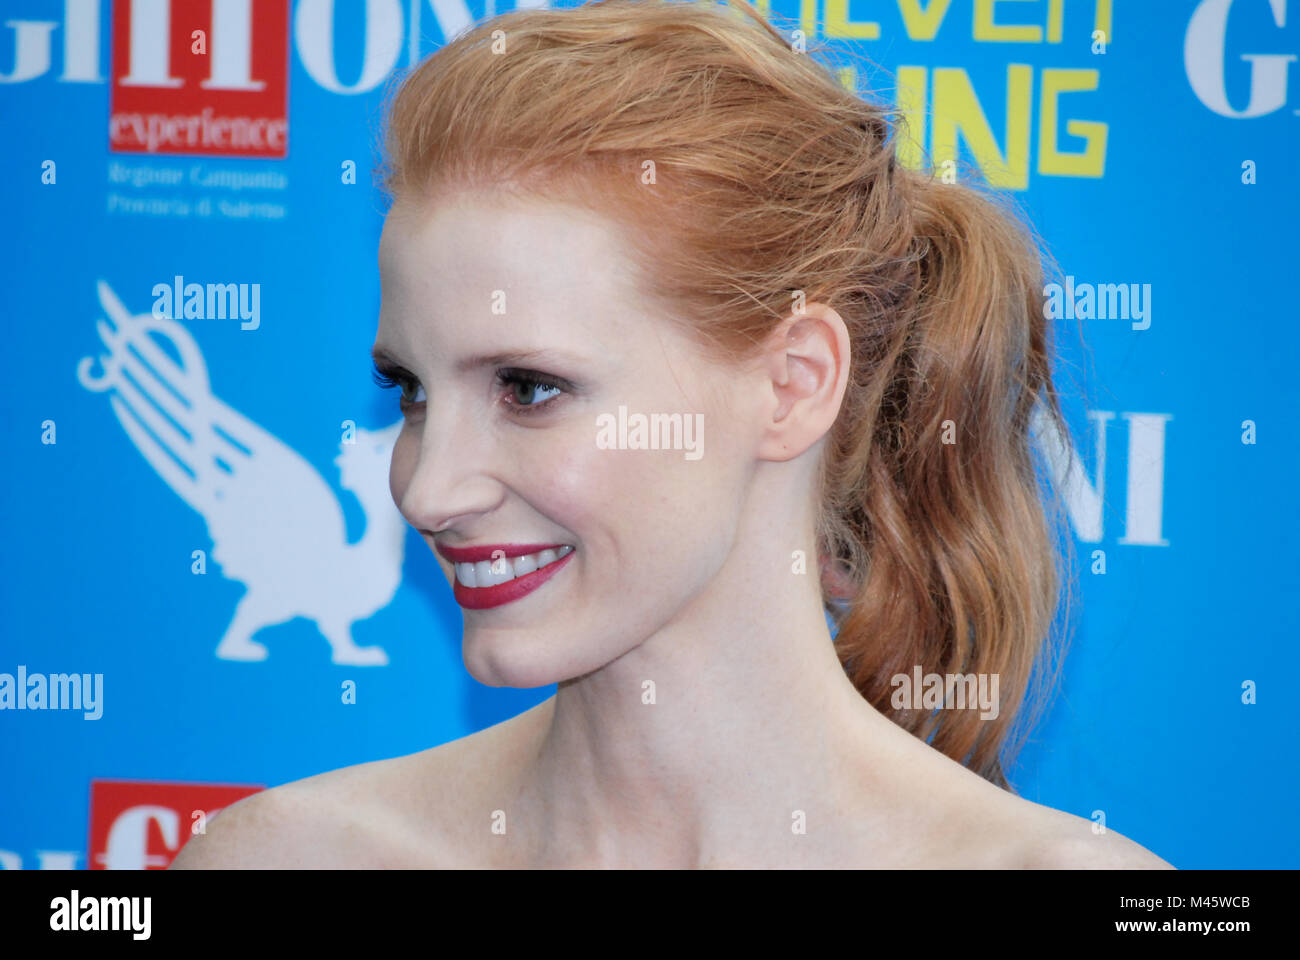 Jessica Chastain Actress High Resolution Stock Photography and ...